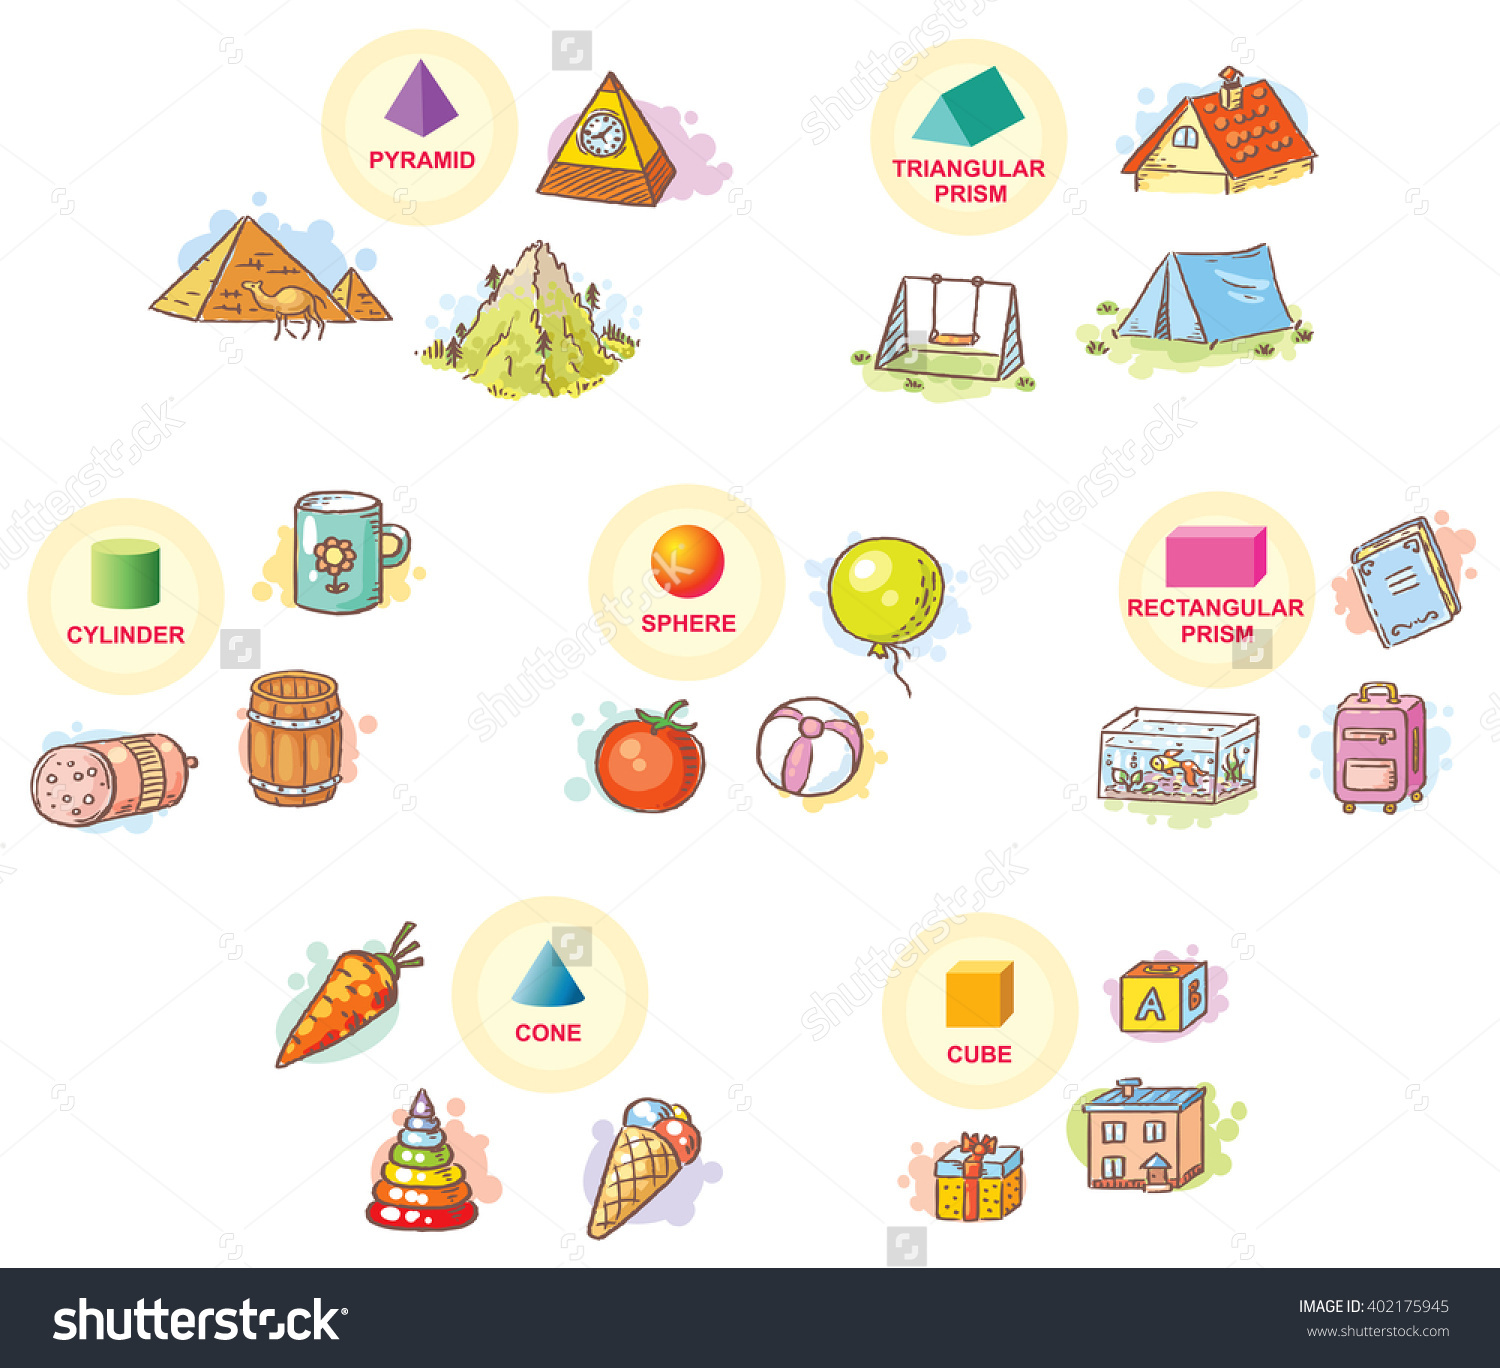 3d Shapes Example Objects Everyday Life Stock Vector 402175945.